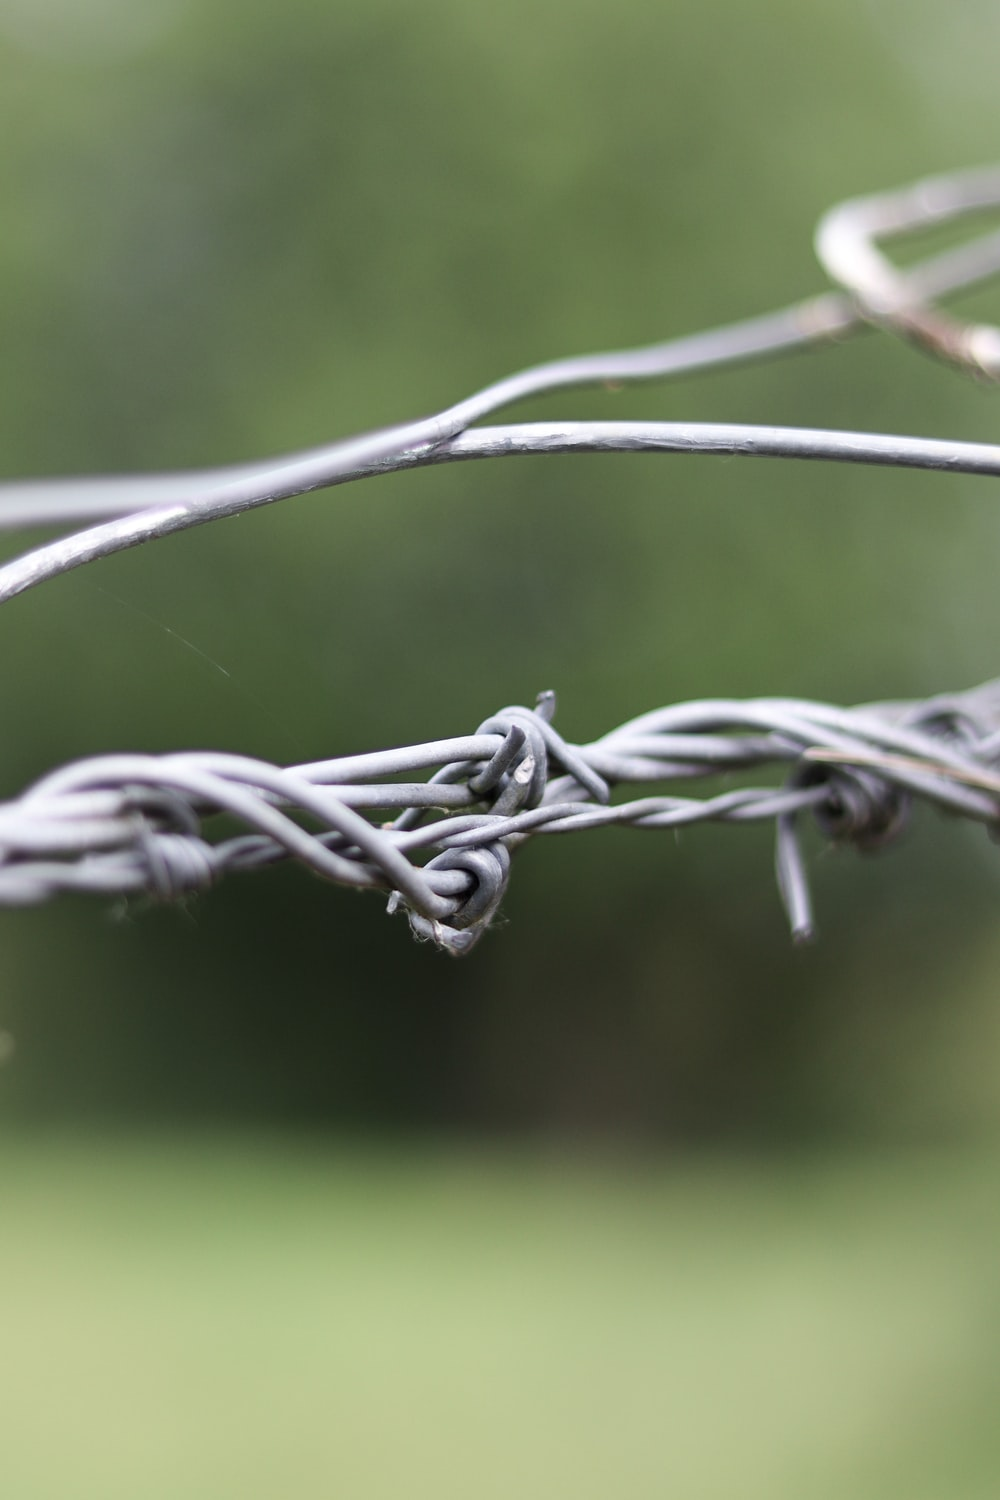 white and gray metal wire